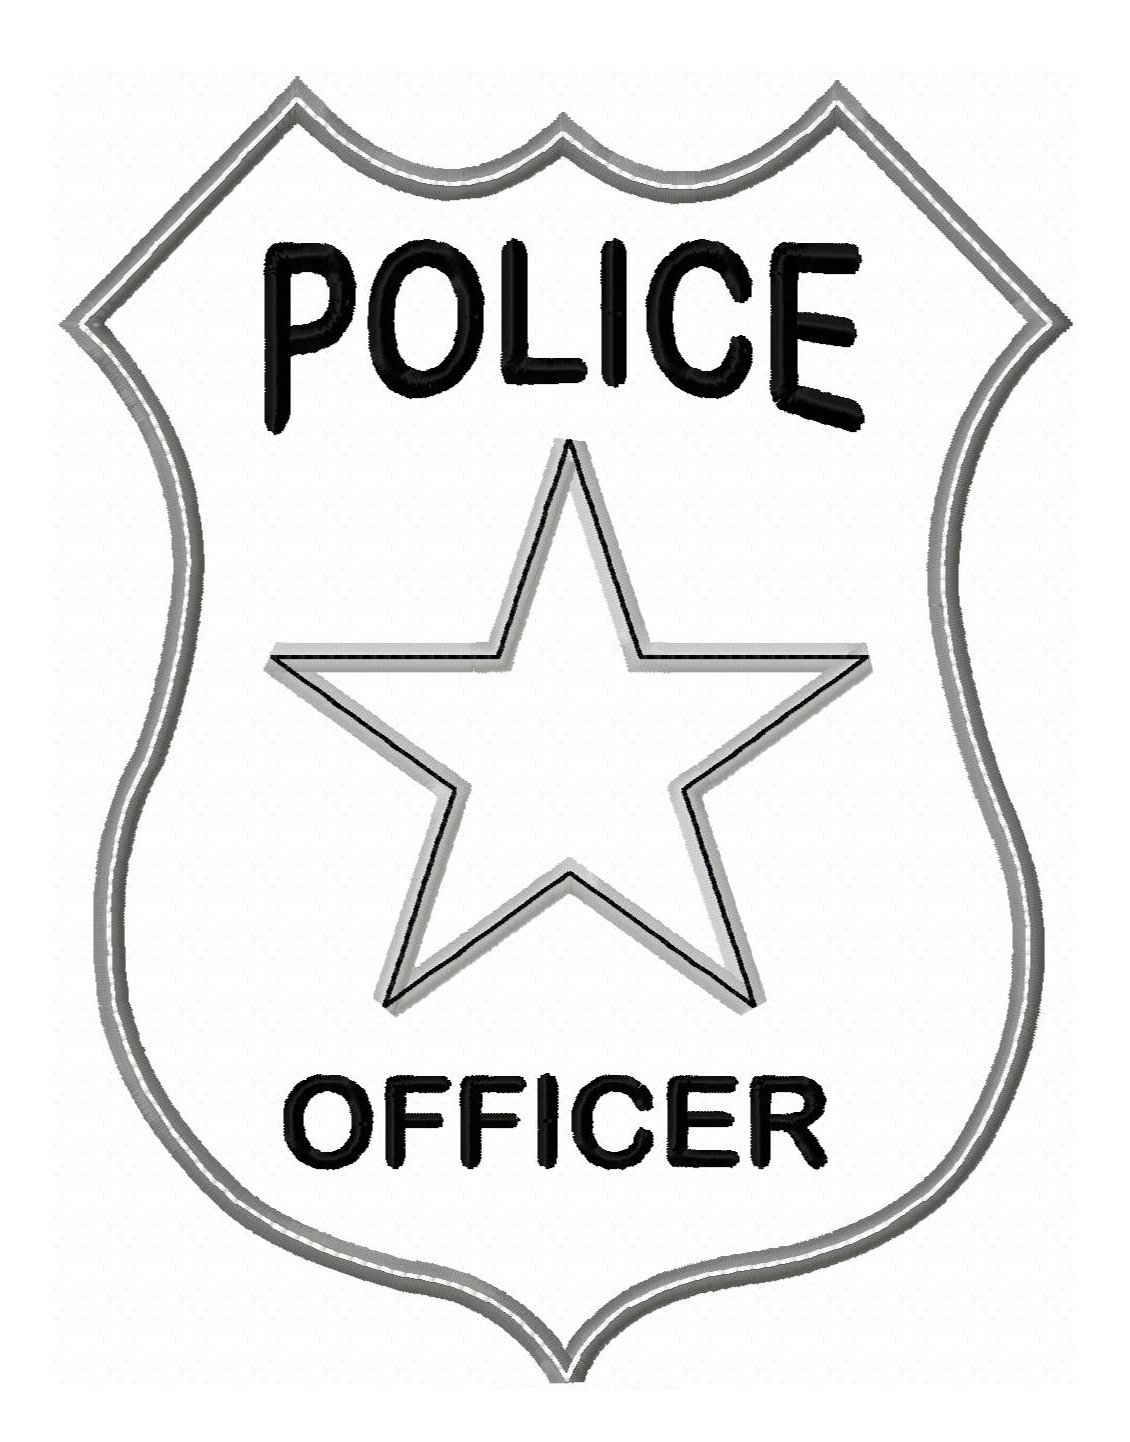 Free clipart police star clip freeuse download Free clipart police star - ClipartFest clip freeuse download